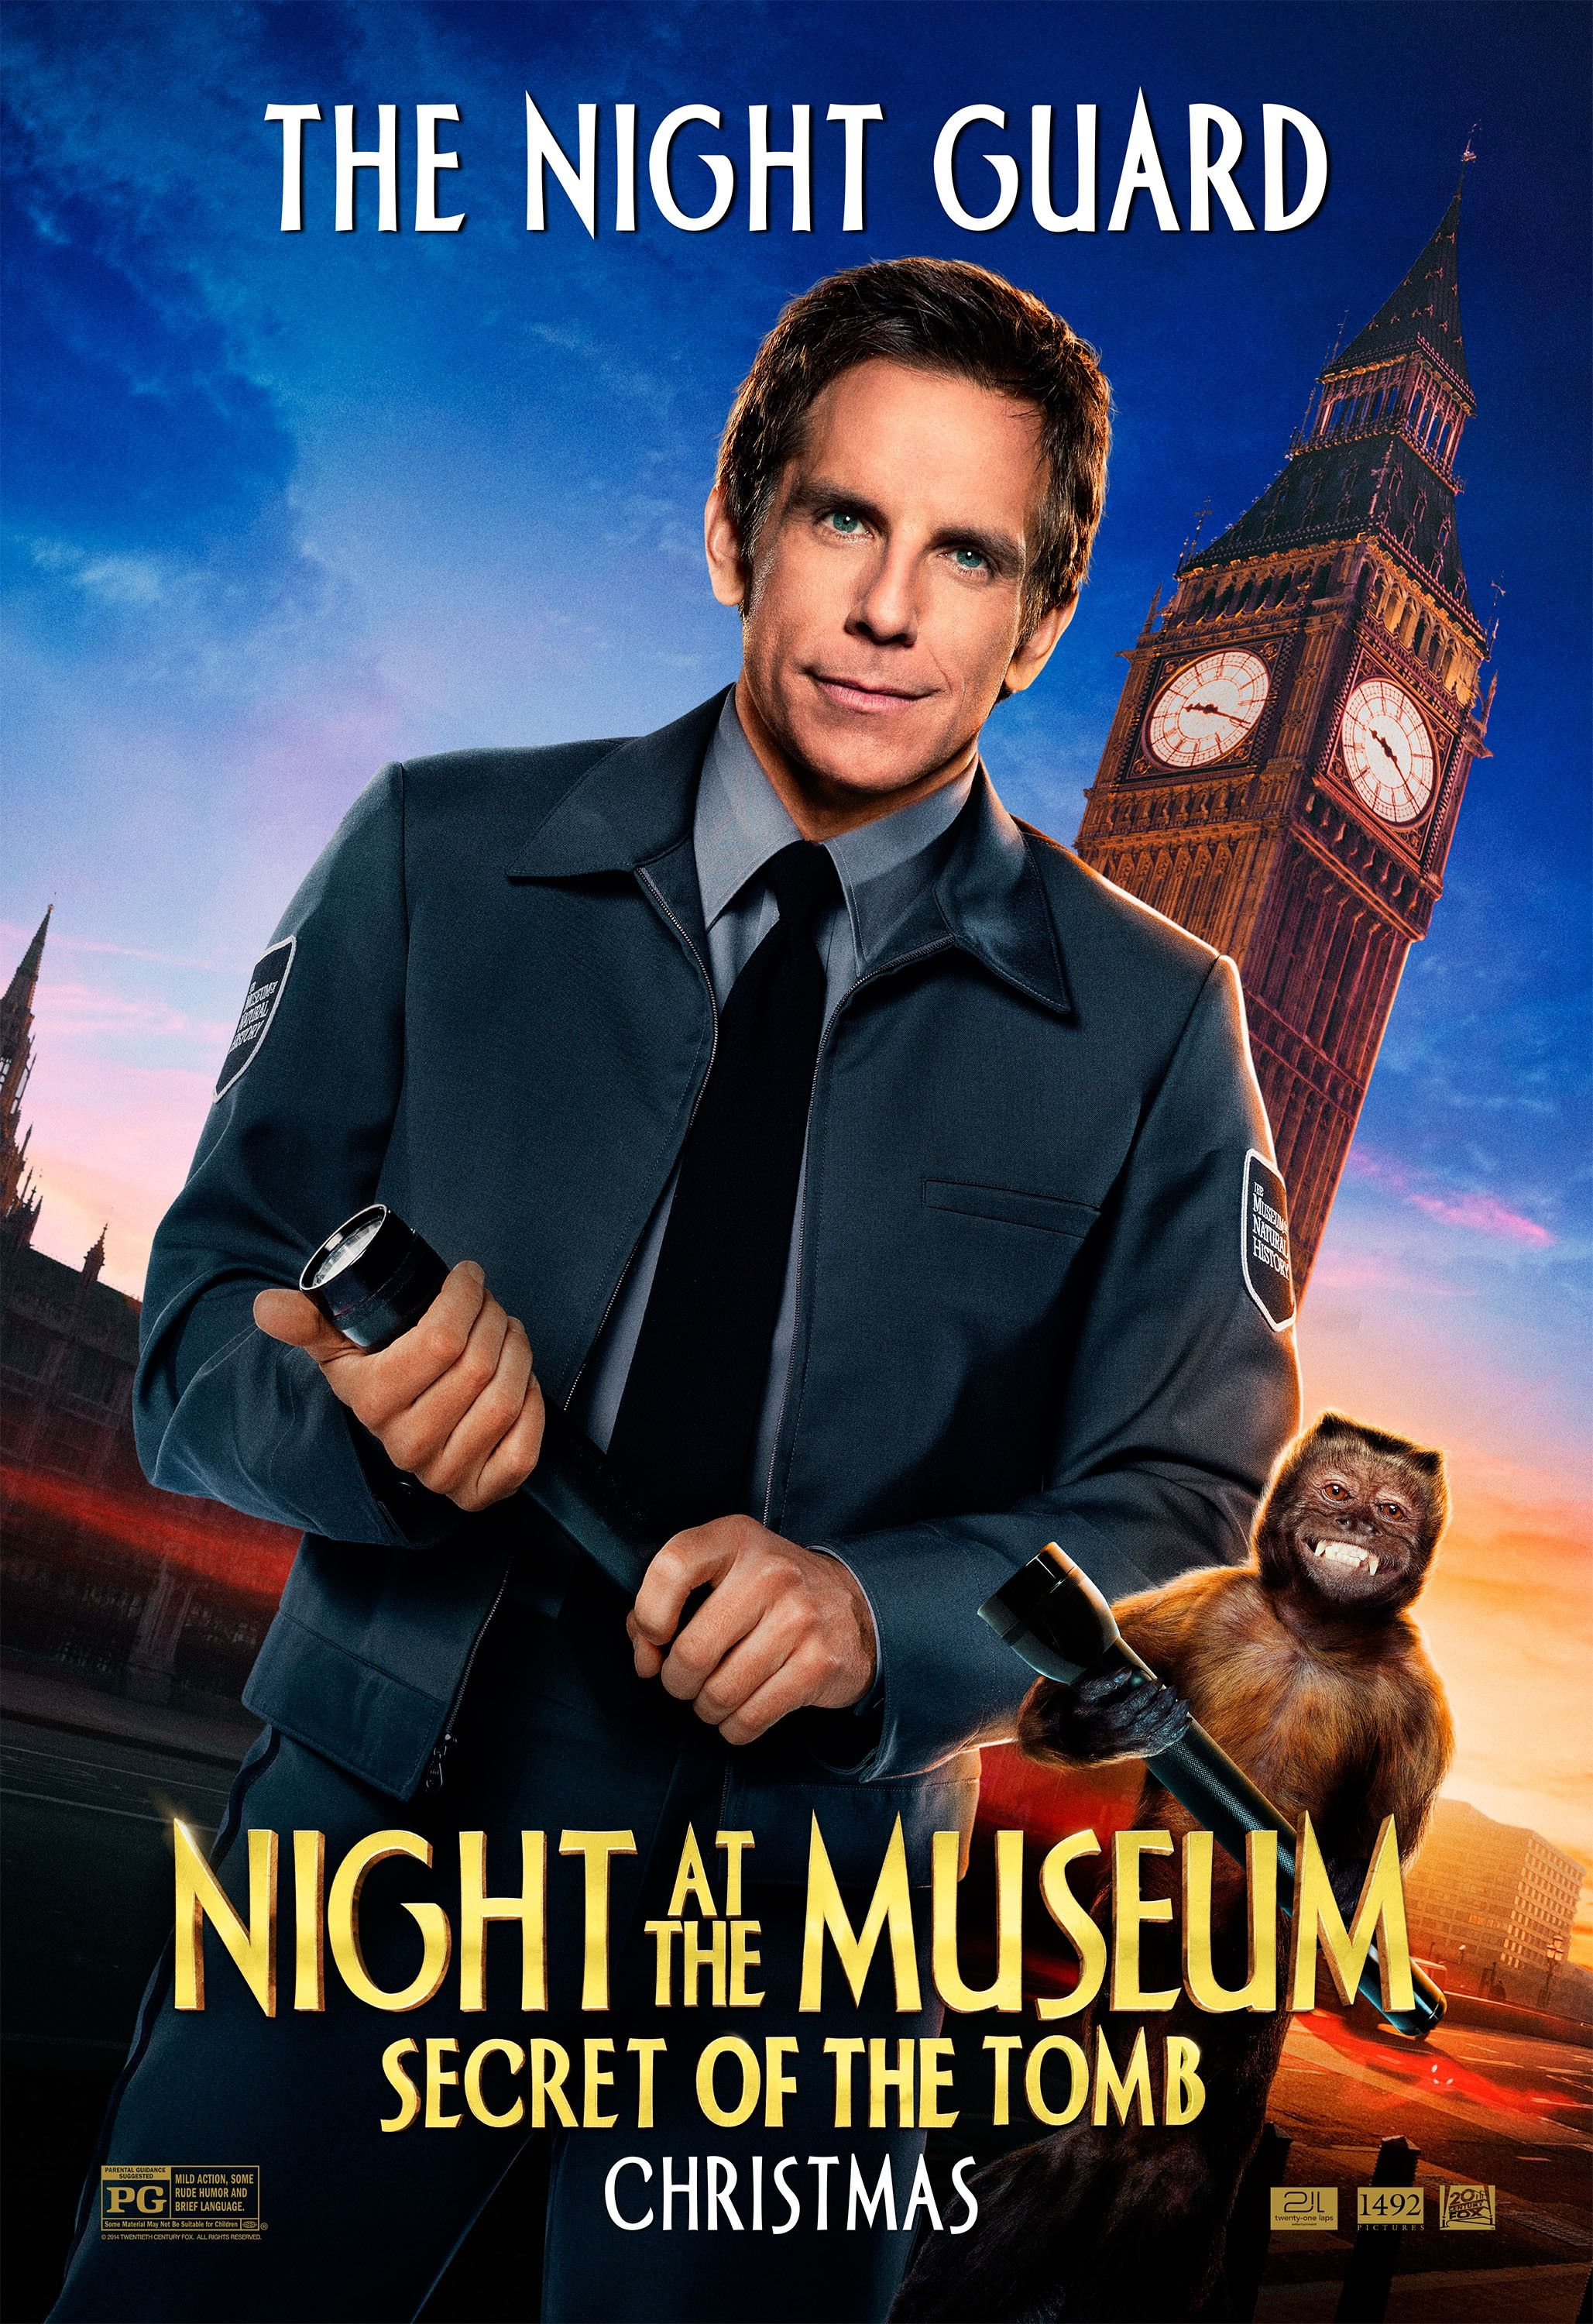 Night at the museum 2 cast cupid dating